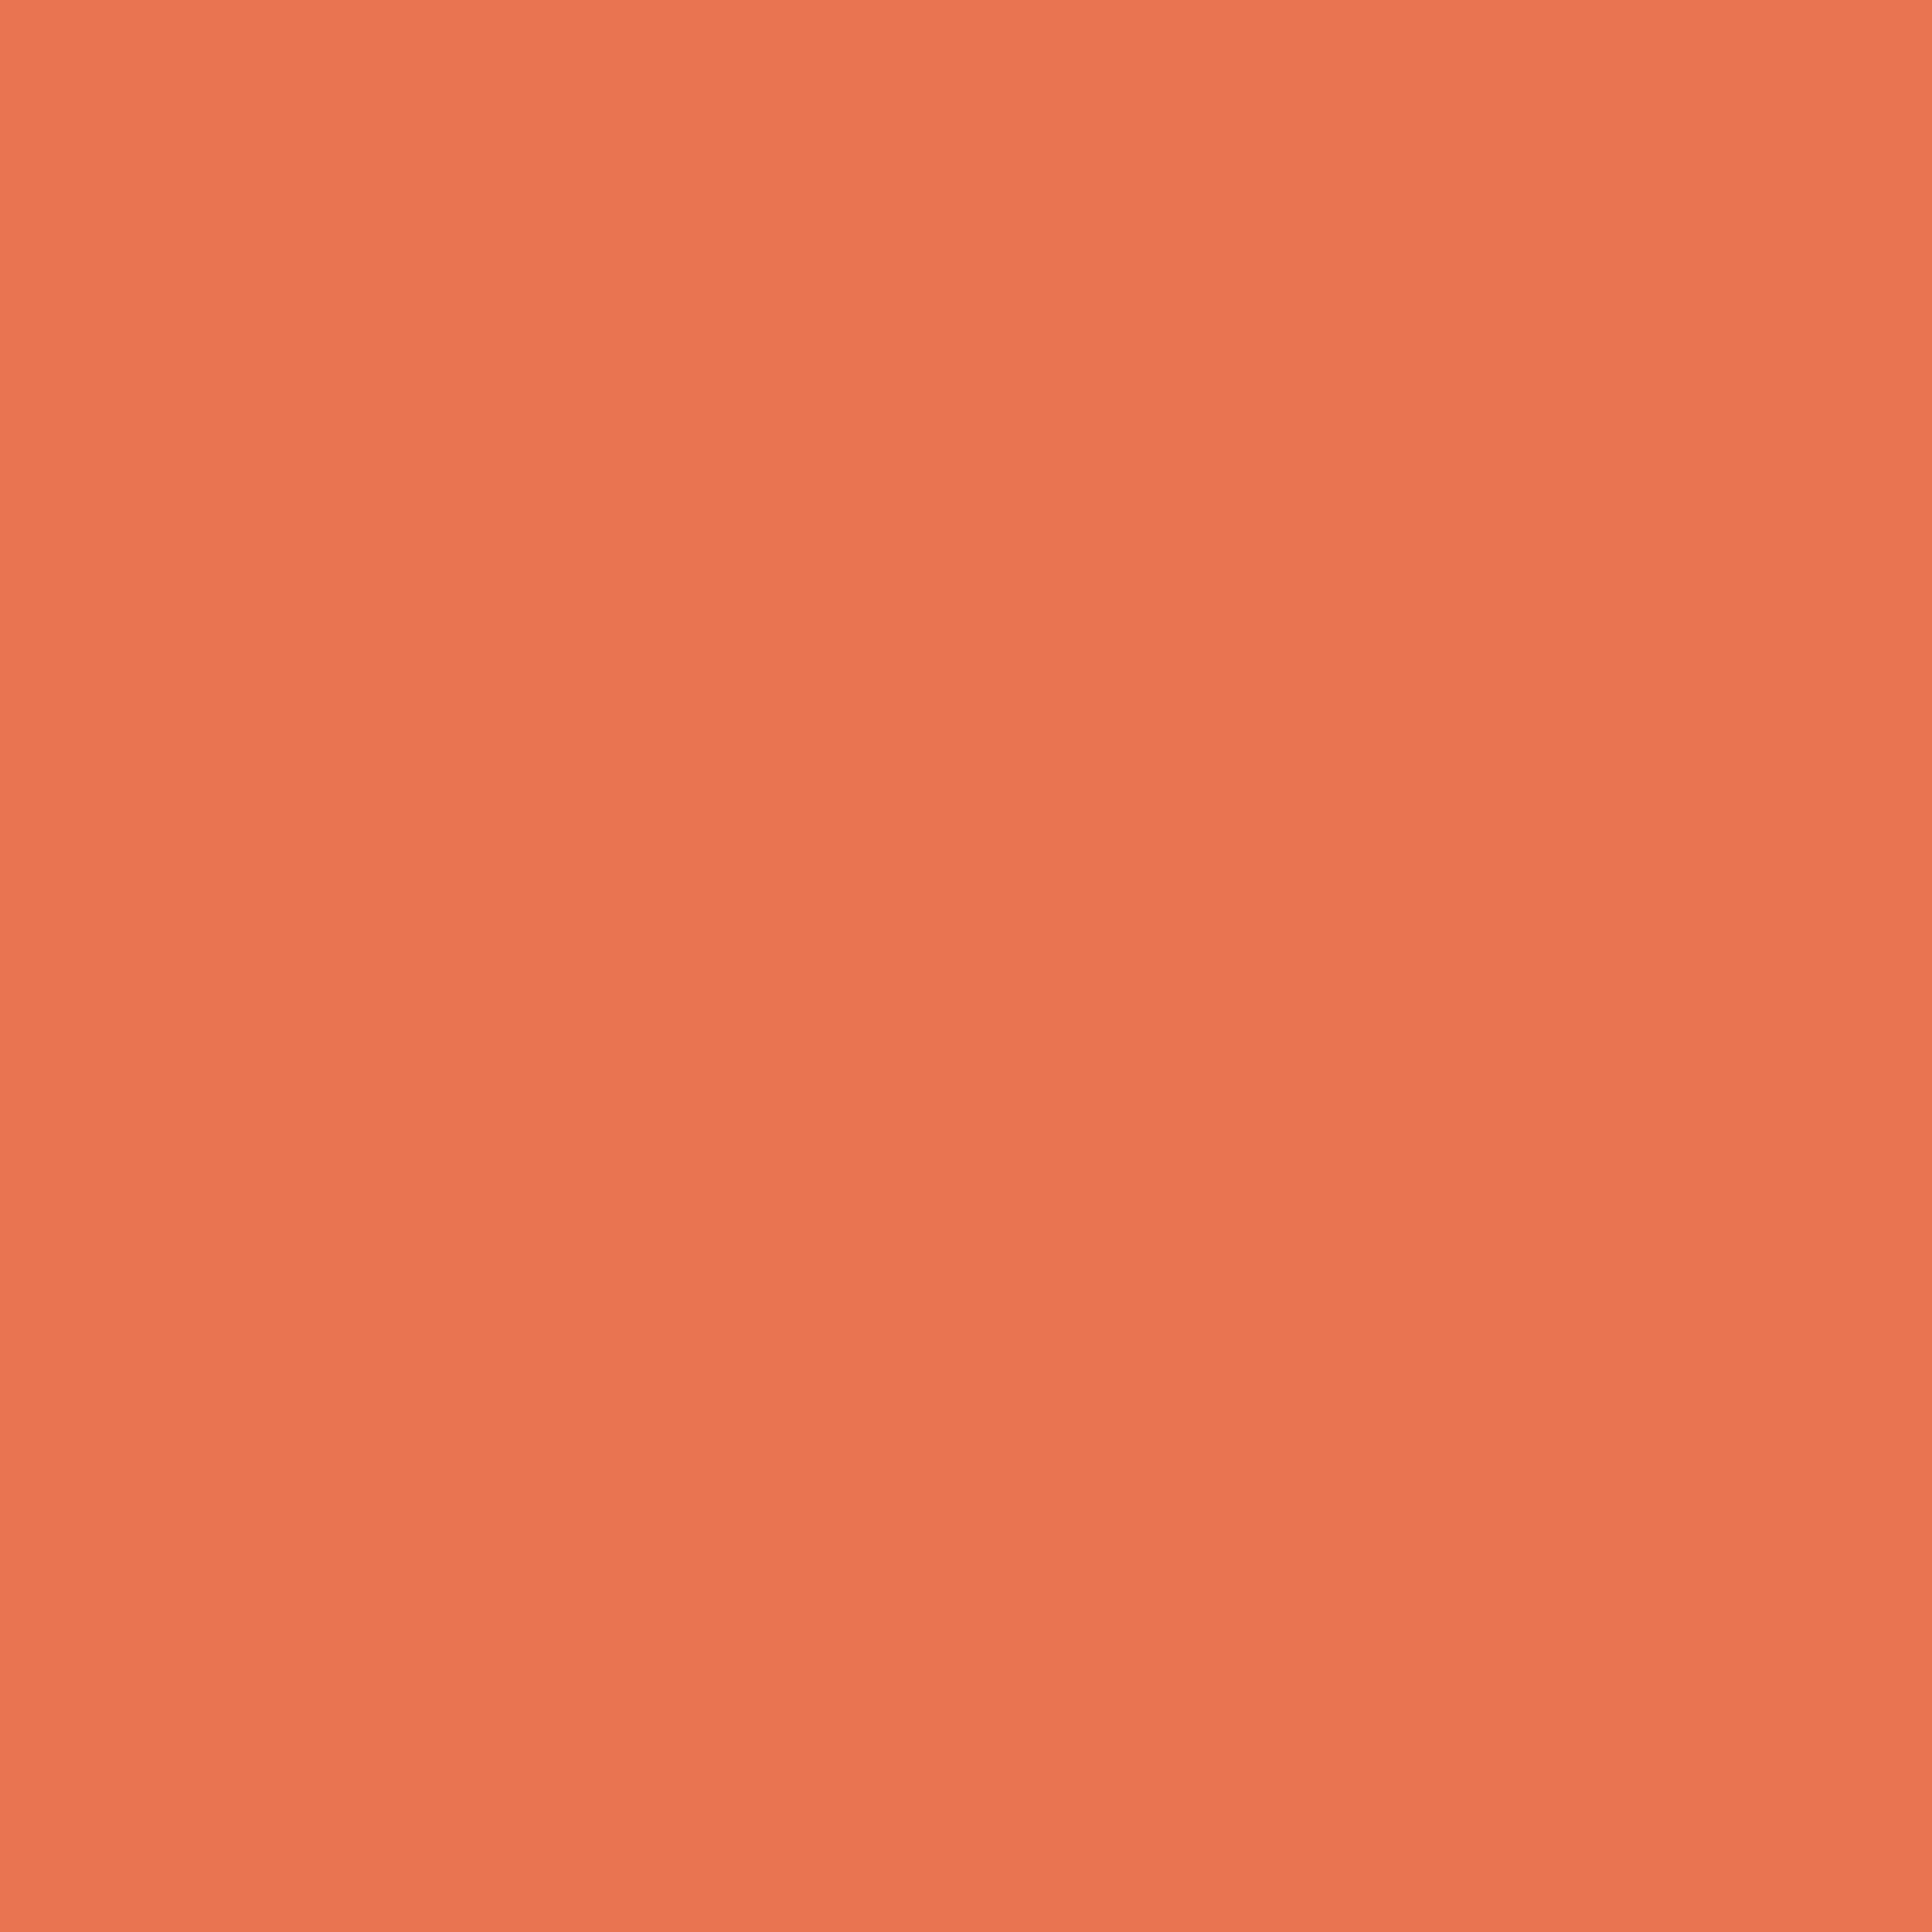 2732x2732 Burnt Sienna Solid Color Background